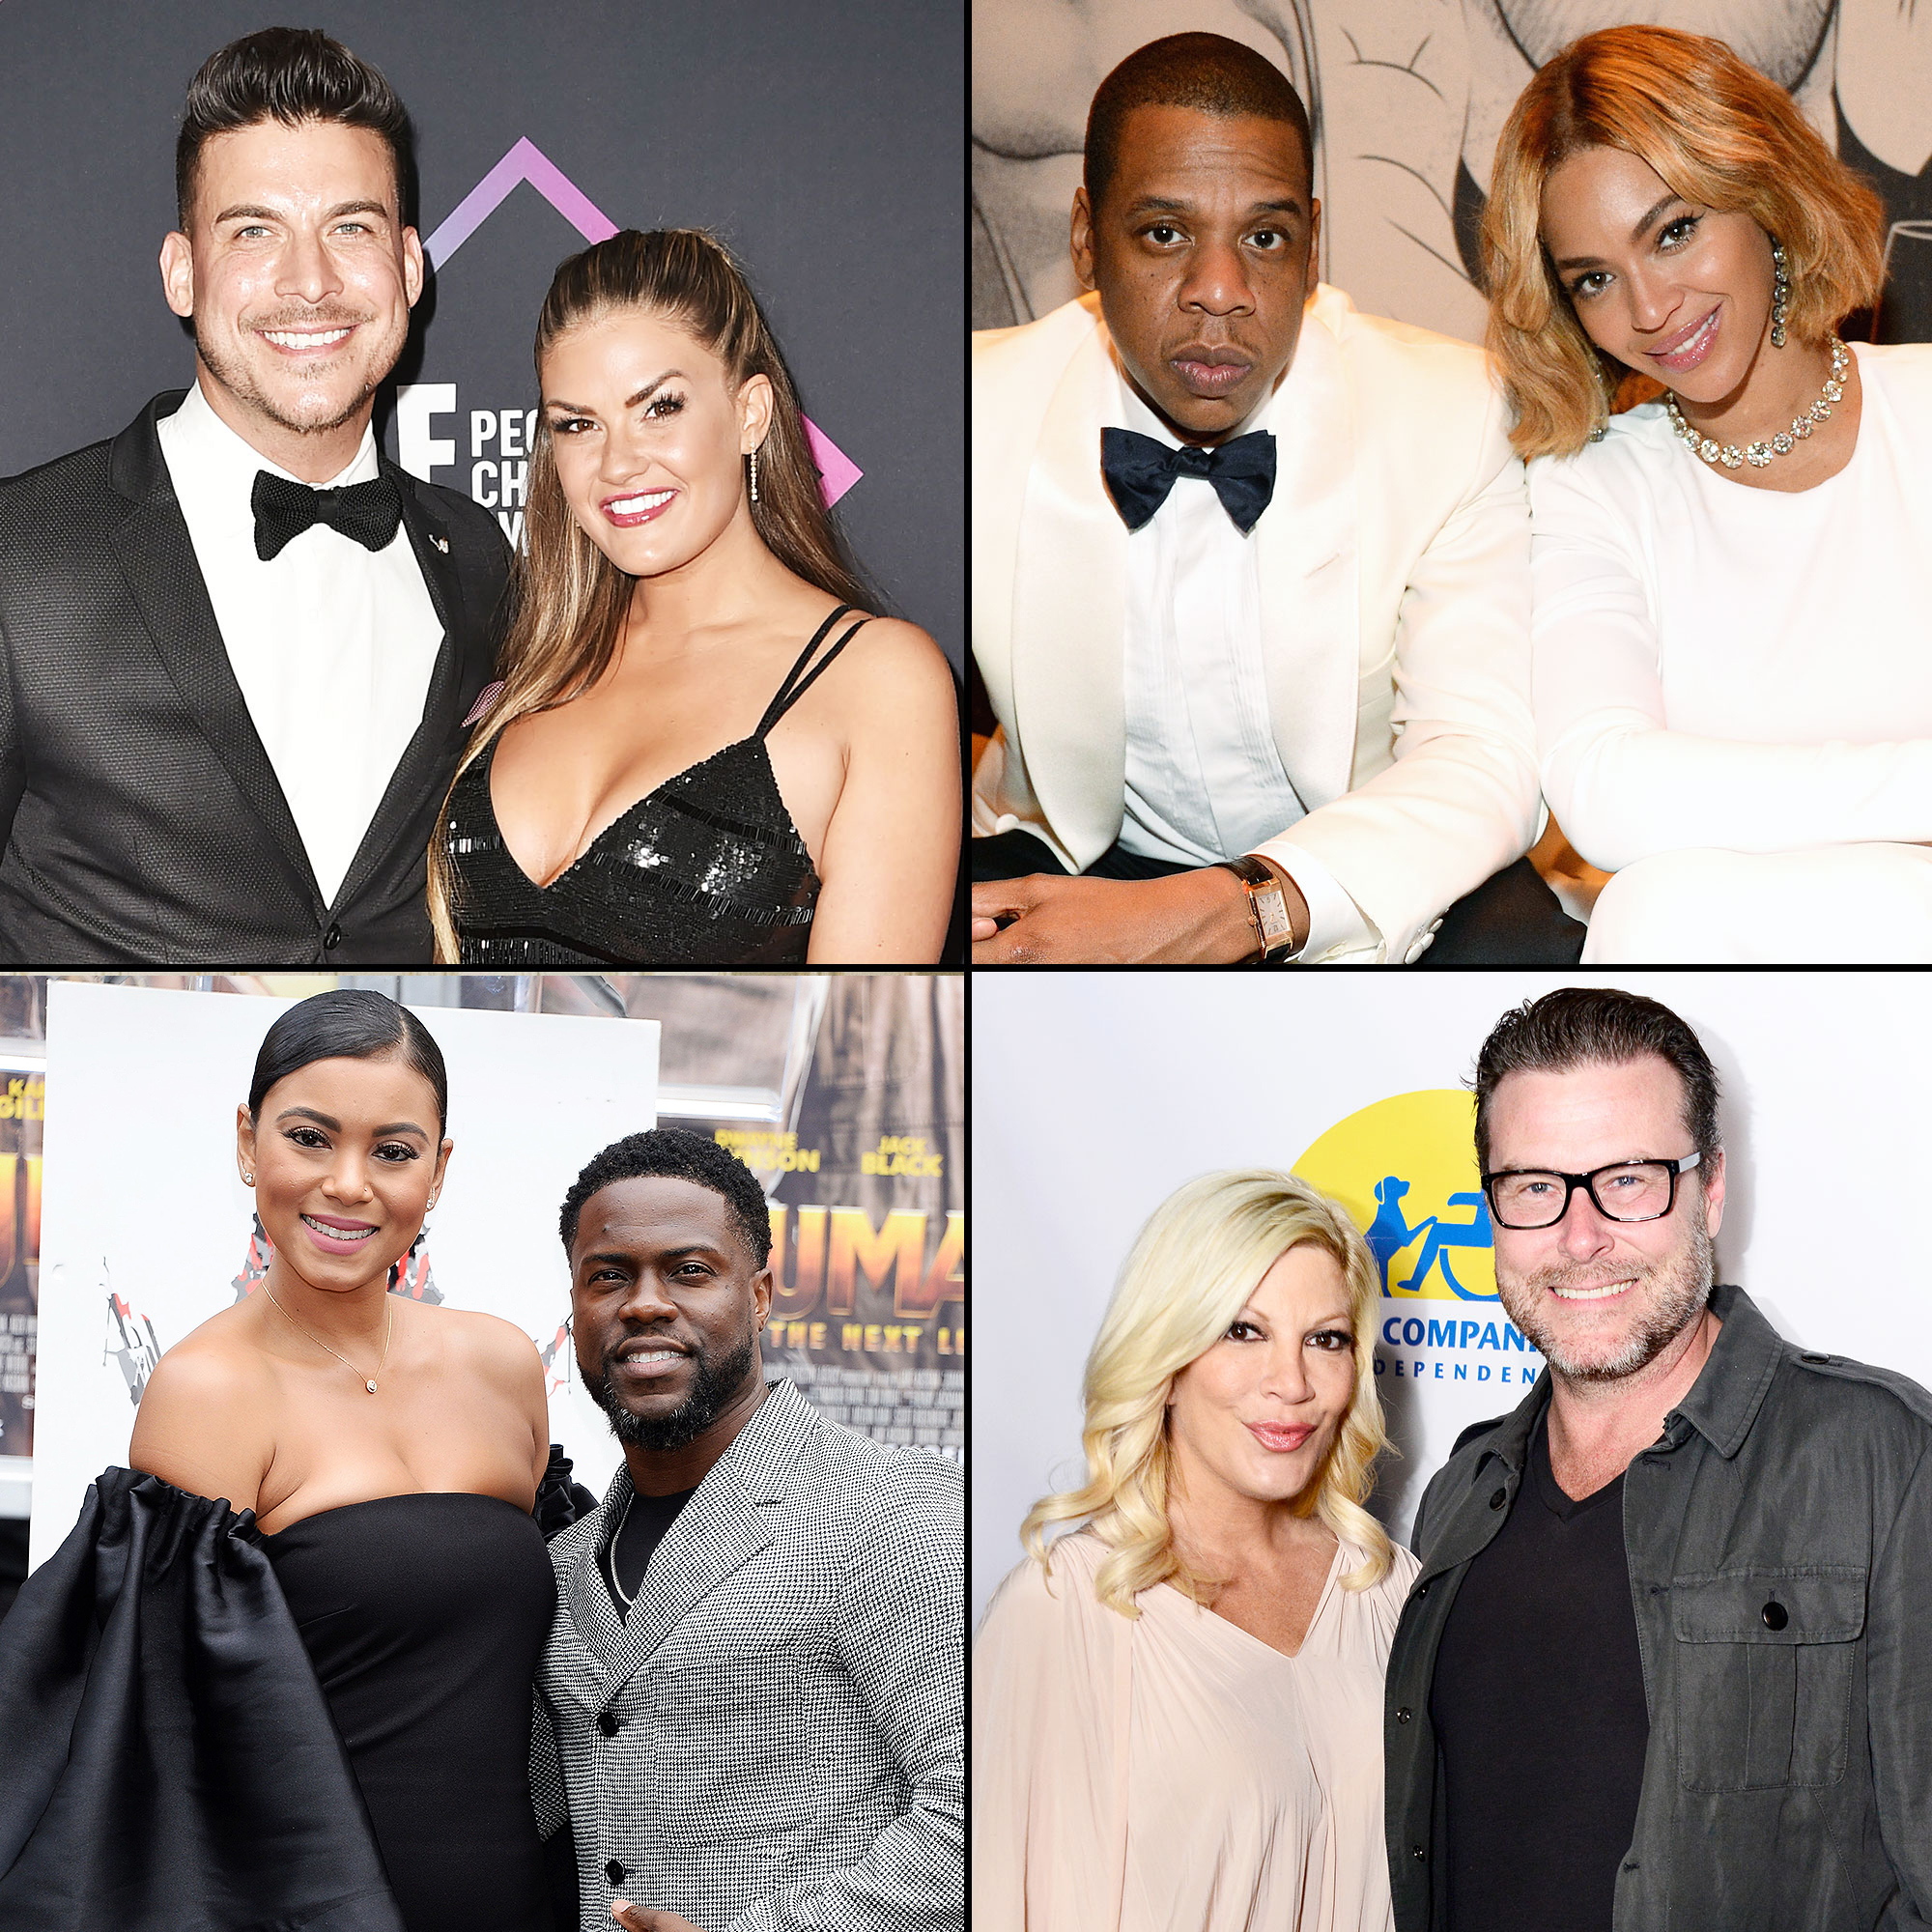 Actors with ugly wives